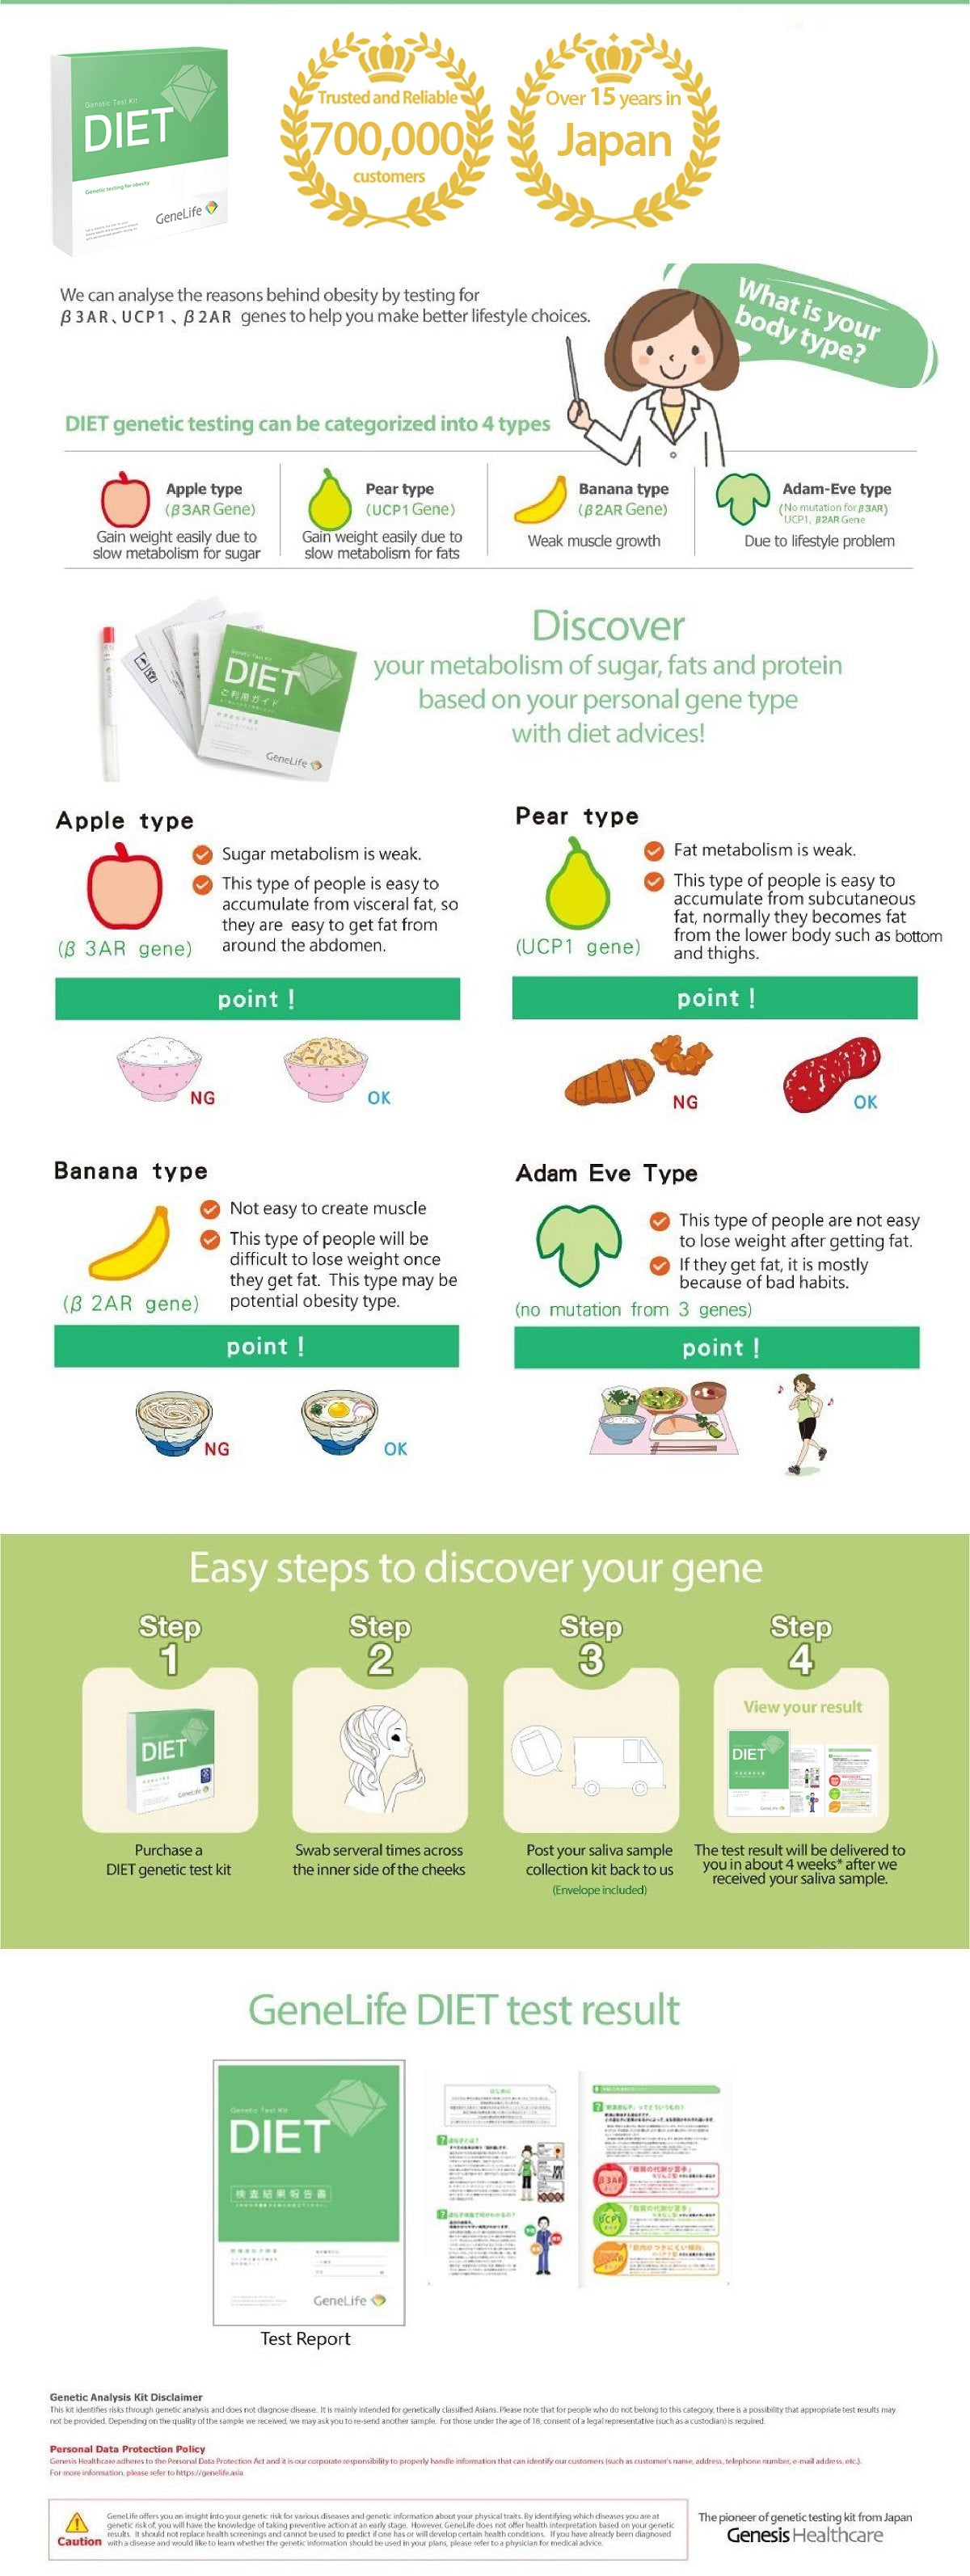 genelife diet dna test singapore